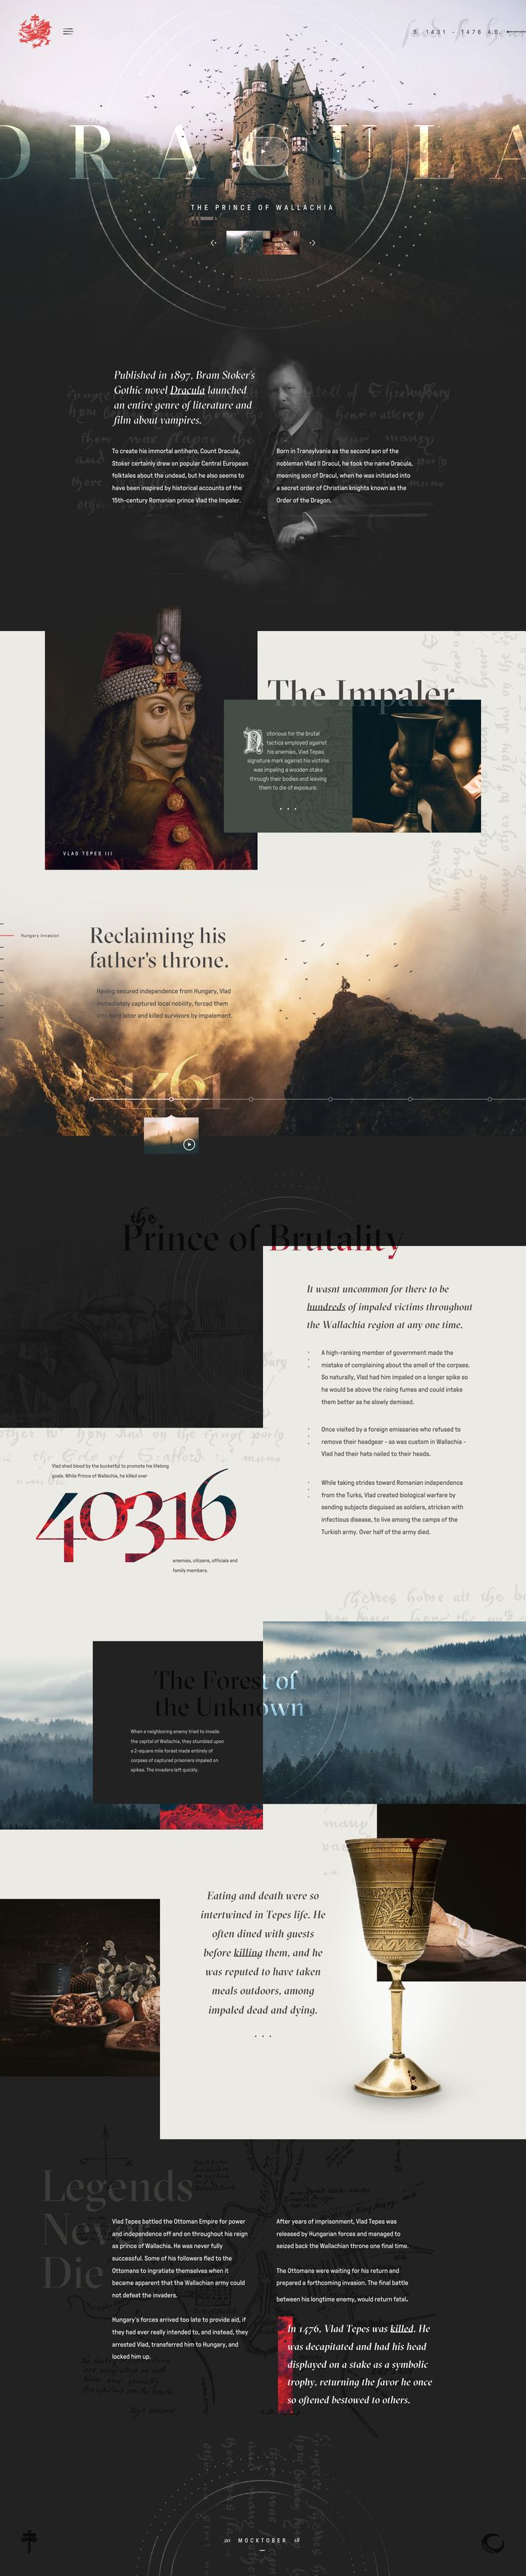 The Real Dracula by Taylor Perrin   website design ideas   website ...